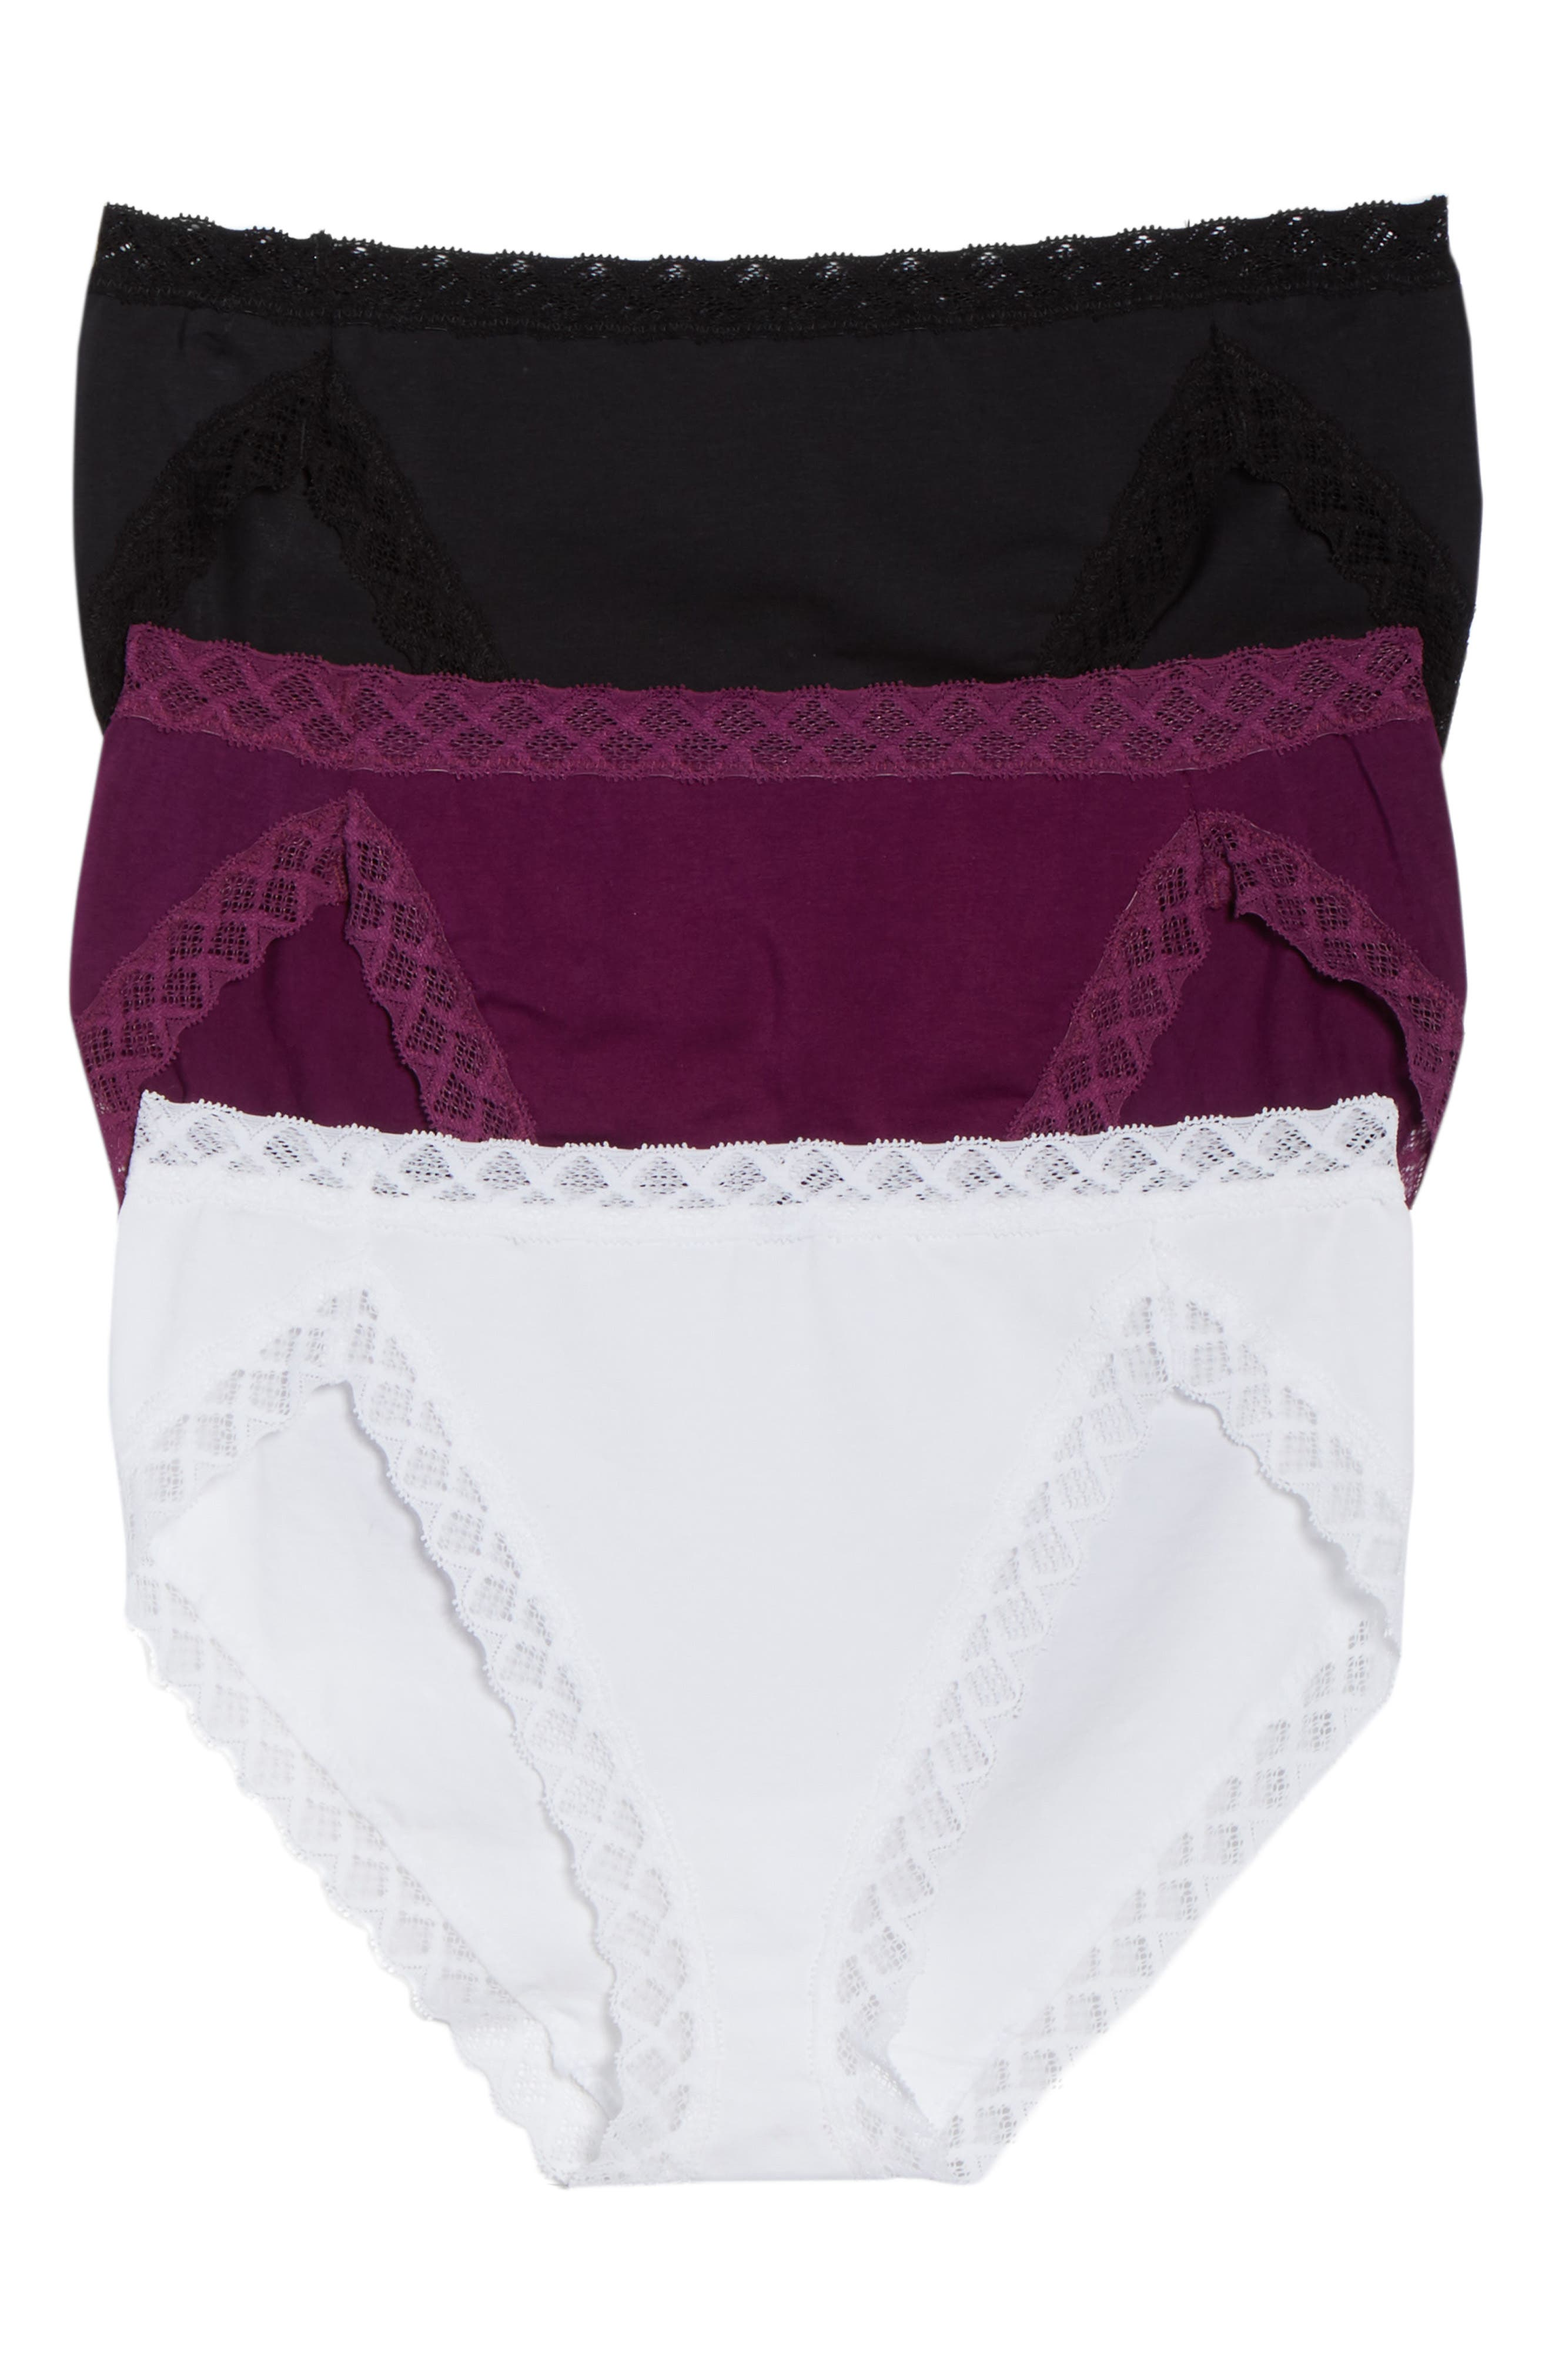 'Bliss' French Cut Briefs,                         Main,                         color, Imperial Purple/ Black/ White